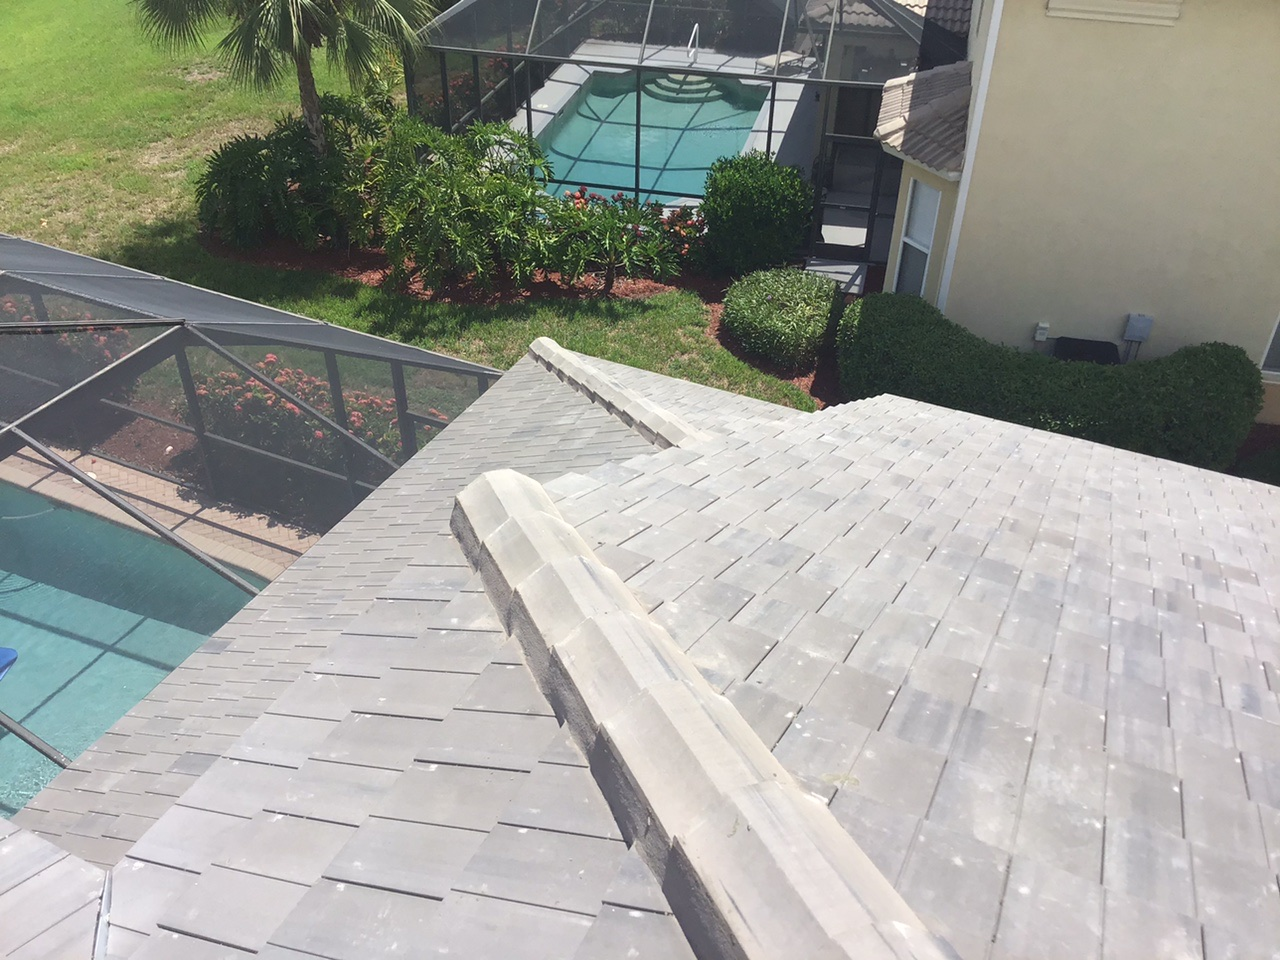 tile roof replacement for a home in estero florida